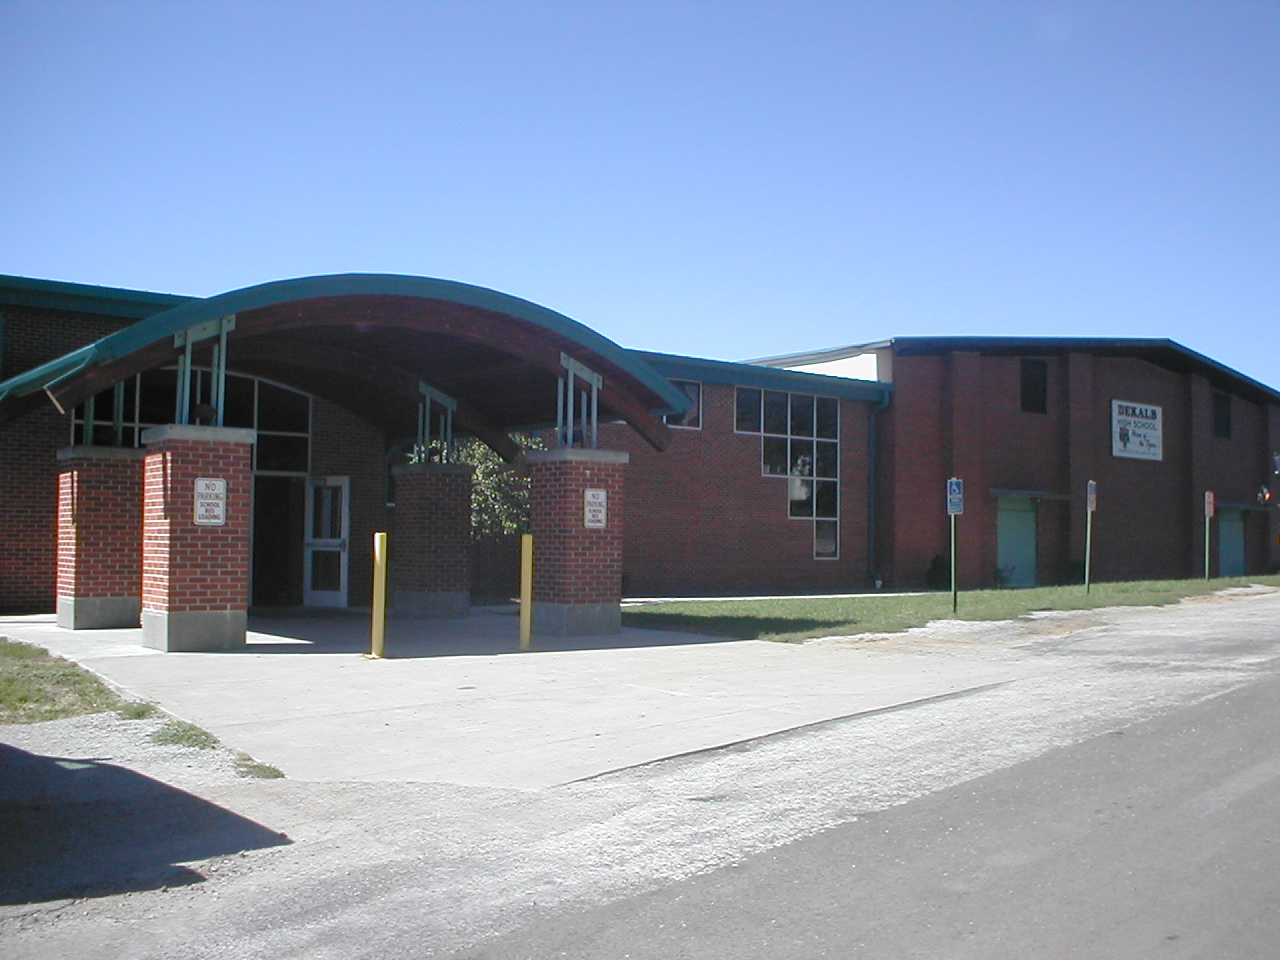 DeKalb High School